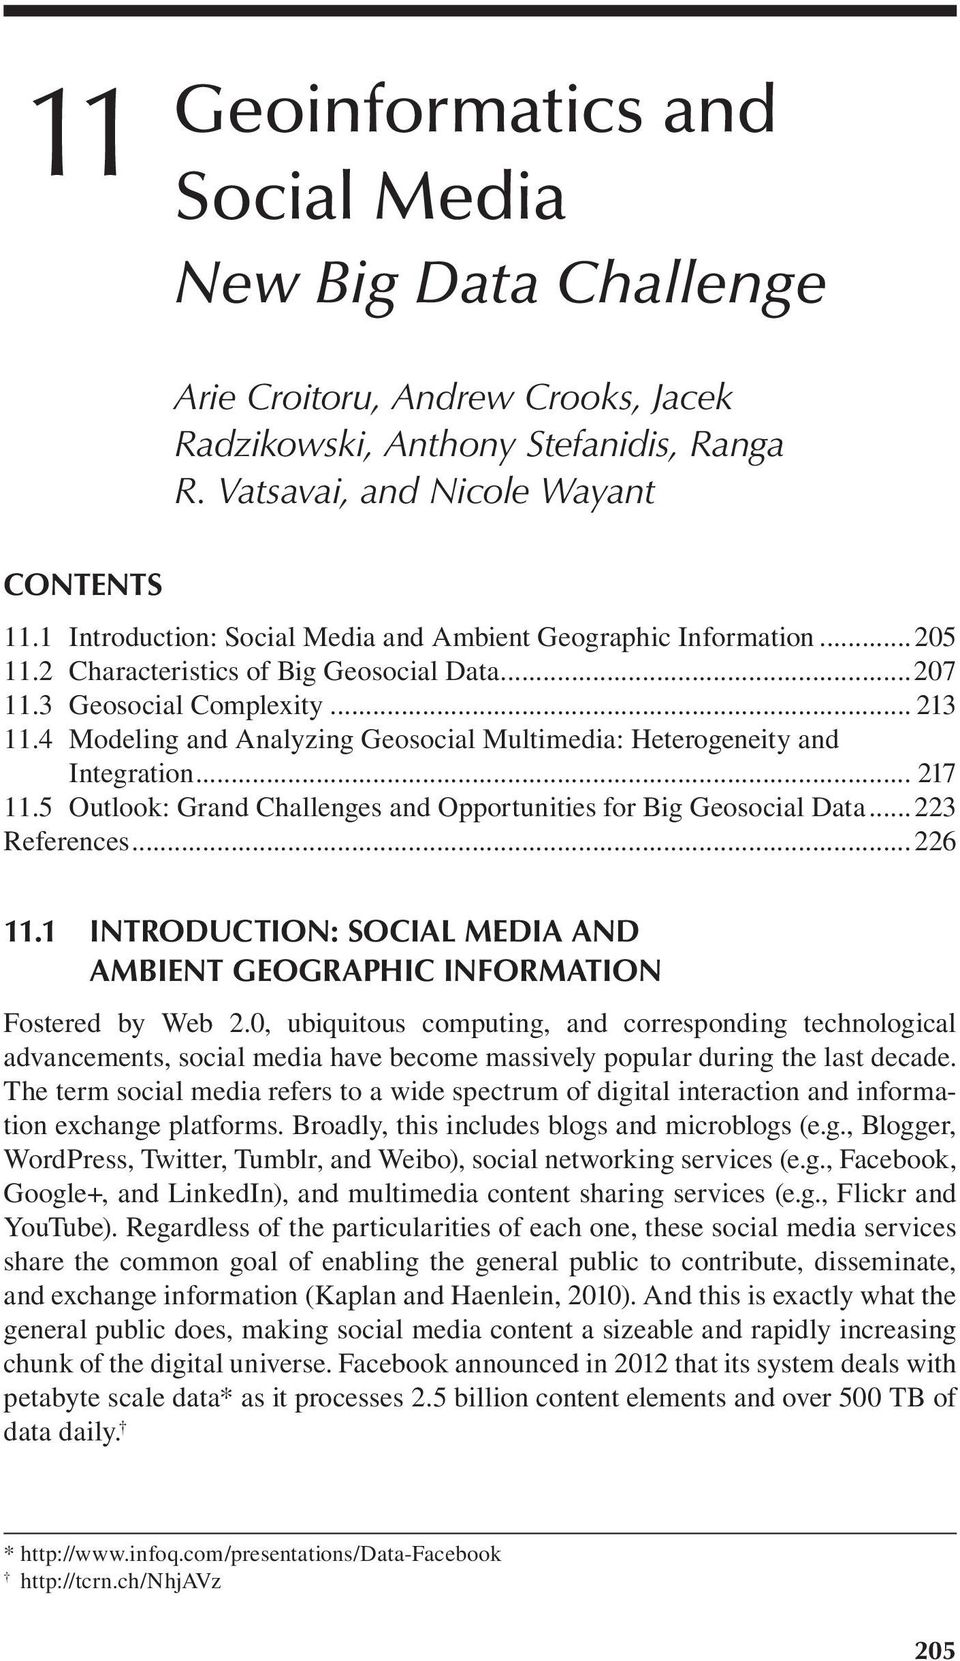 4 Modeling and Analyzing Geosocial Multimedia: Heterogeneity and Integration... 217 11.5 Outlook: Grand Challenges and Opportunities for Big Geosocial Data...223 References...226 11.